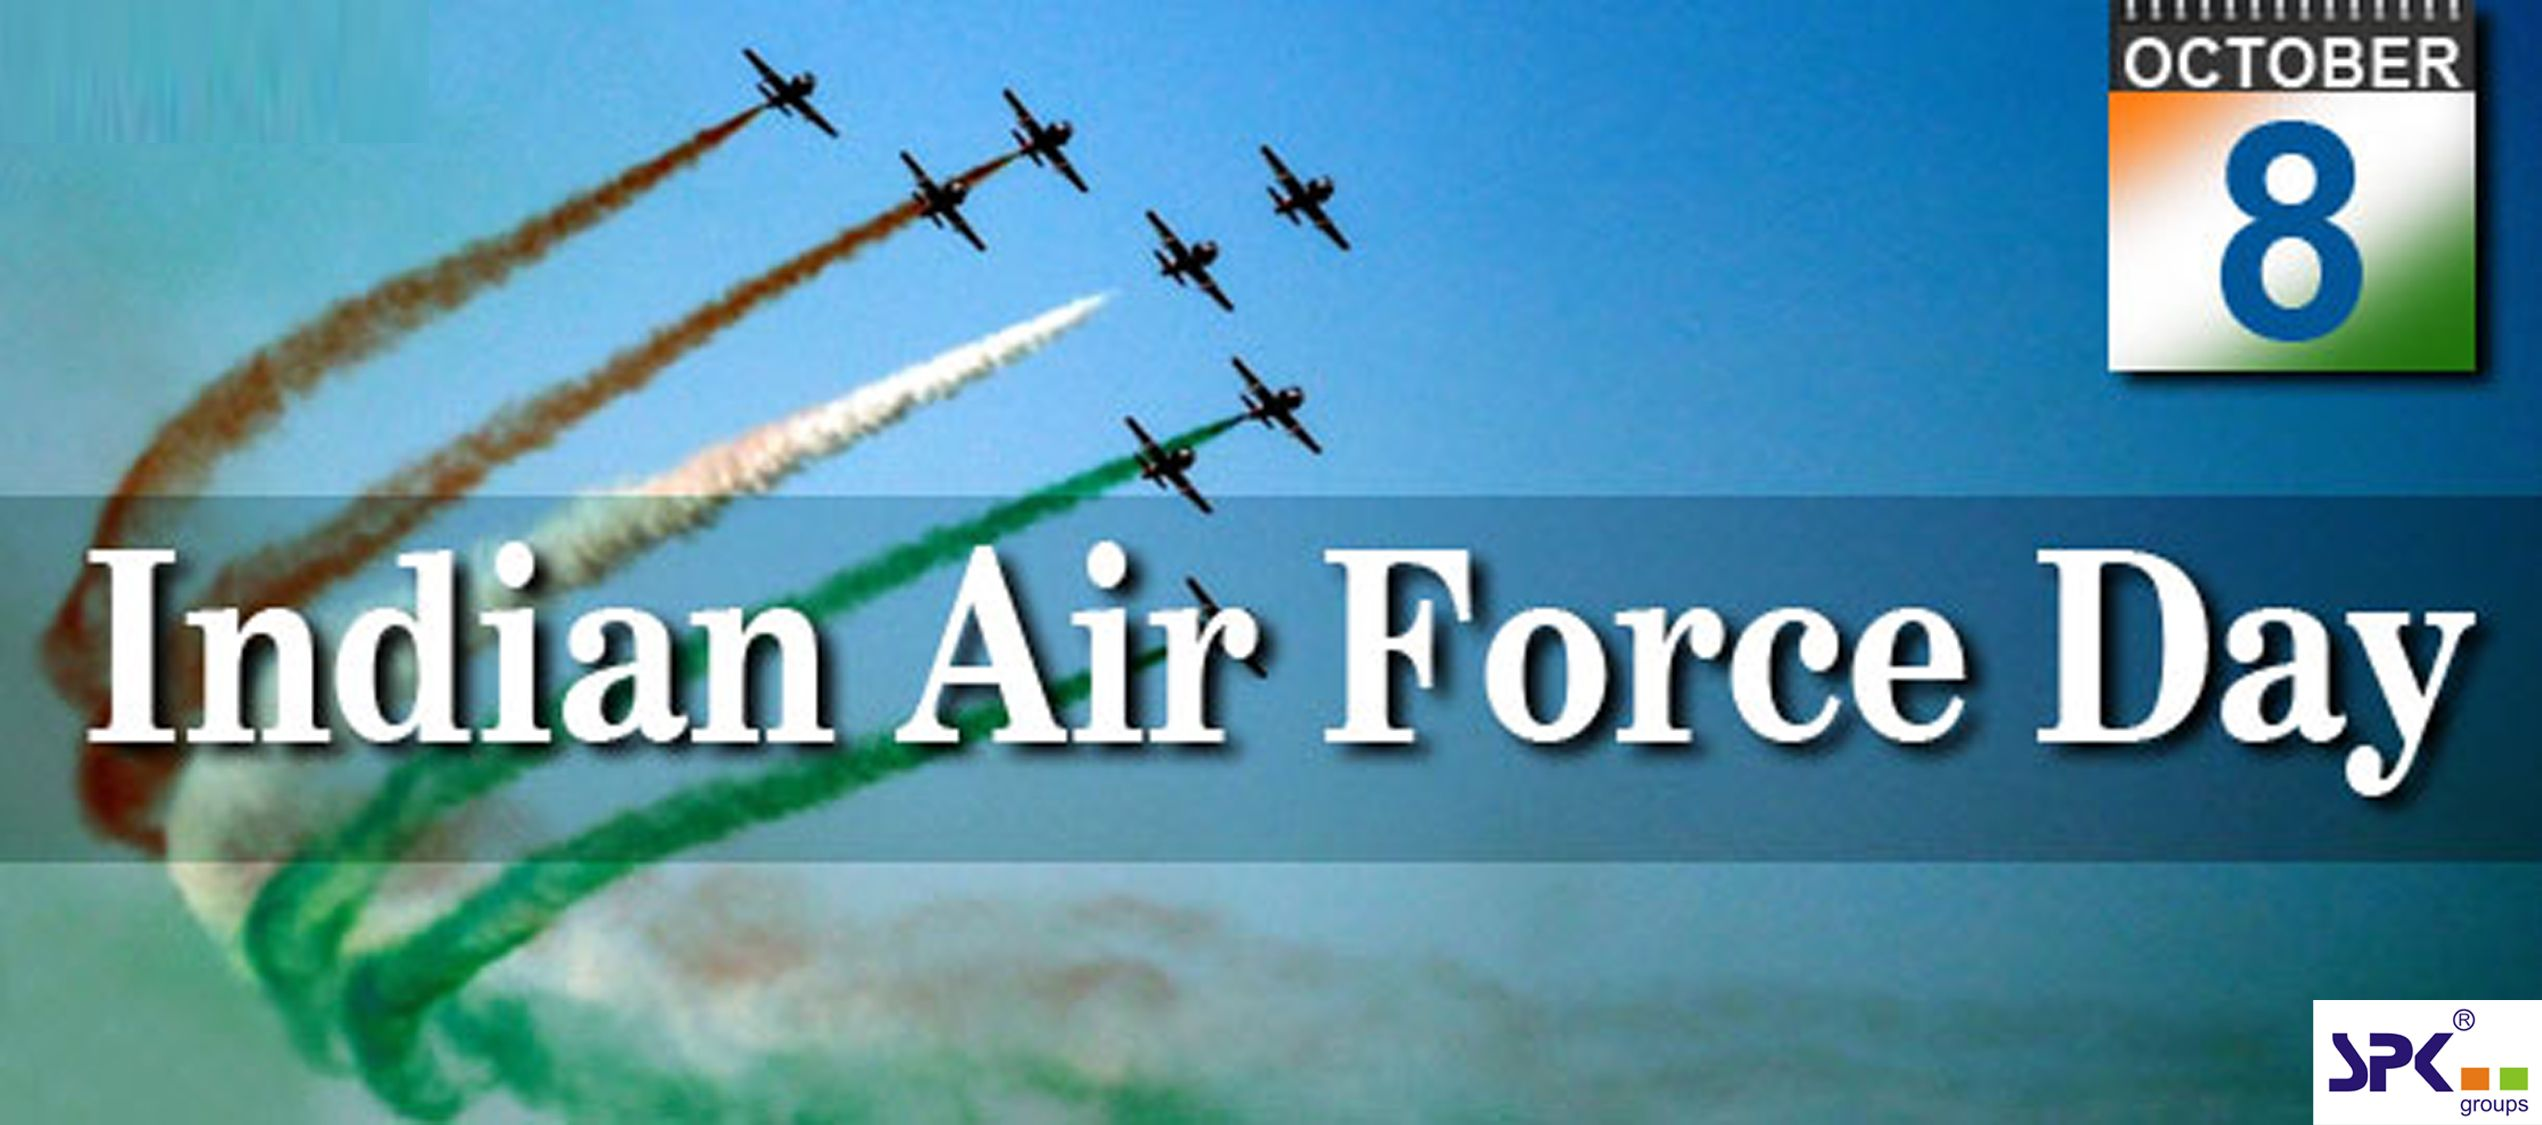 Indian Air Force celebrating its 84th anniversary Indian